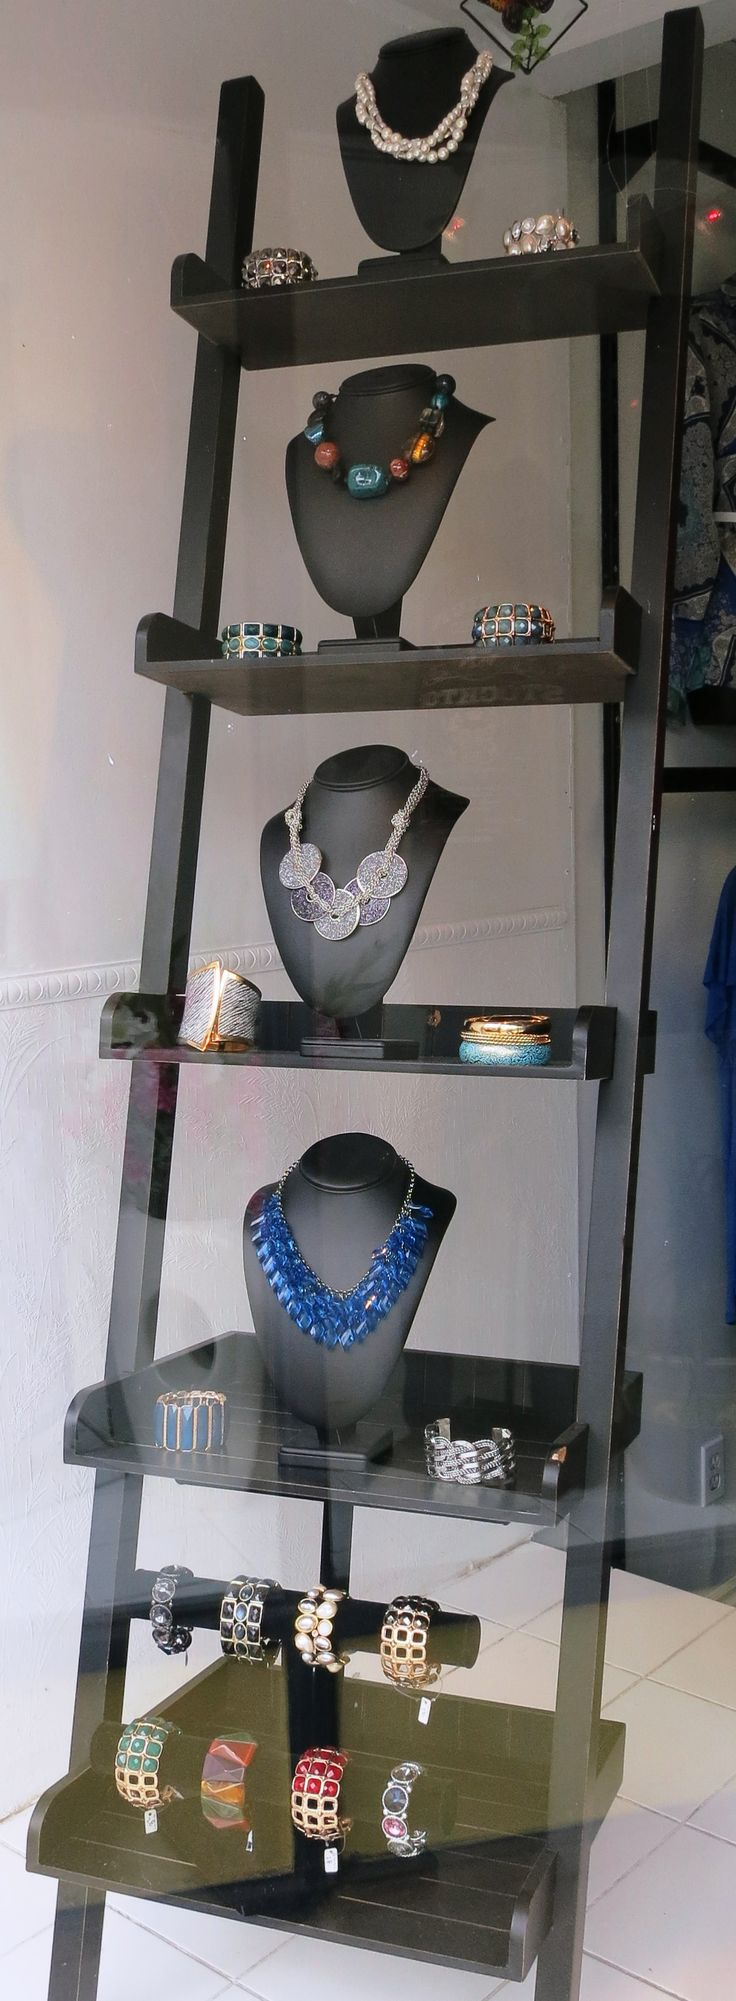 Window display ideas for jewelry   best the dream images on pinterest  glass display cabinets